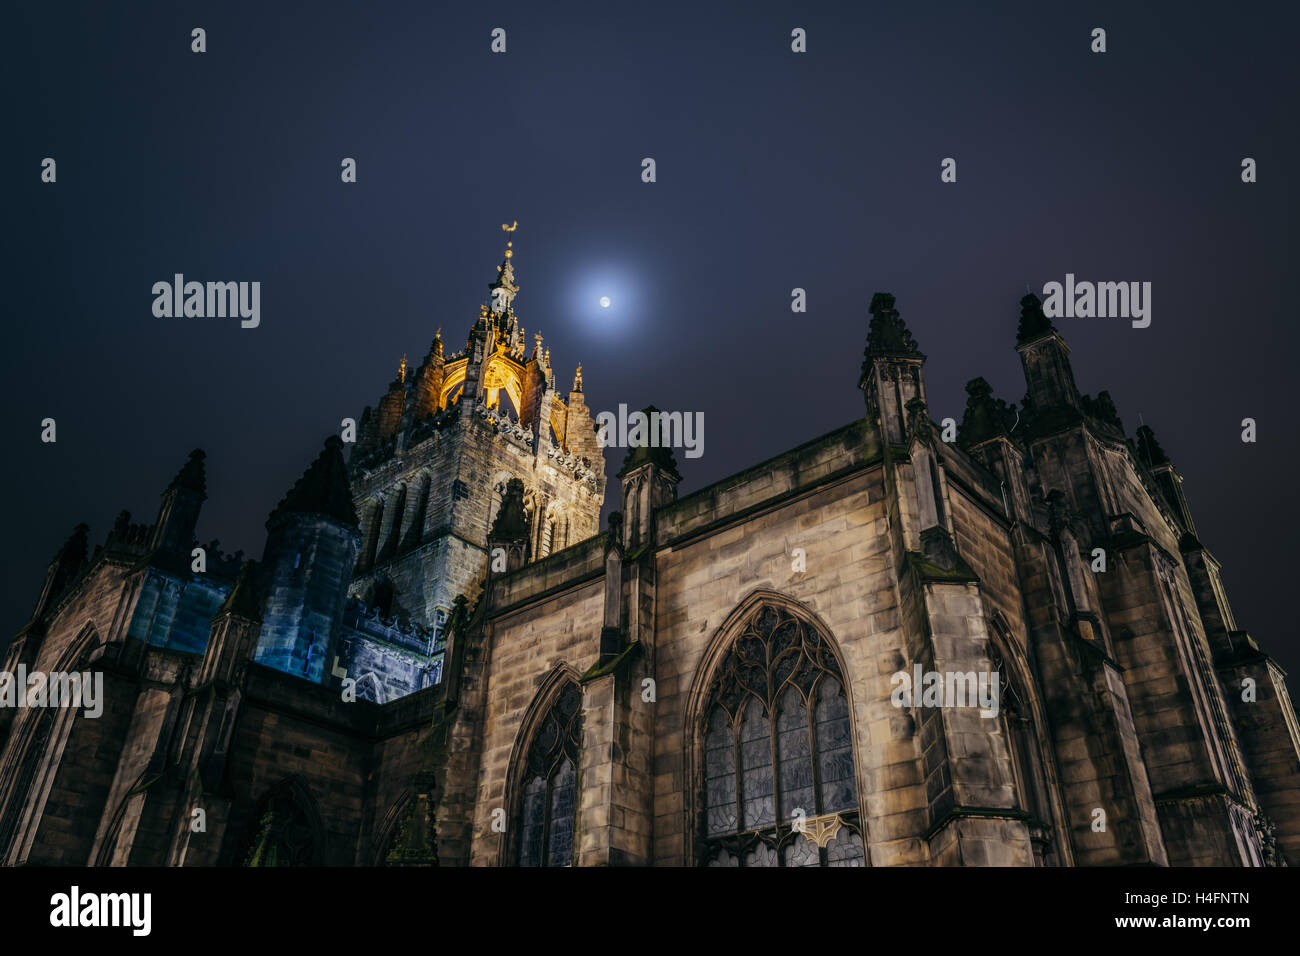 St Giles' Cathedral, the High Kirk of Edinburgh. Taken at night on the Royal Mile, Edinburgh, Scotland UK. - Stock Image